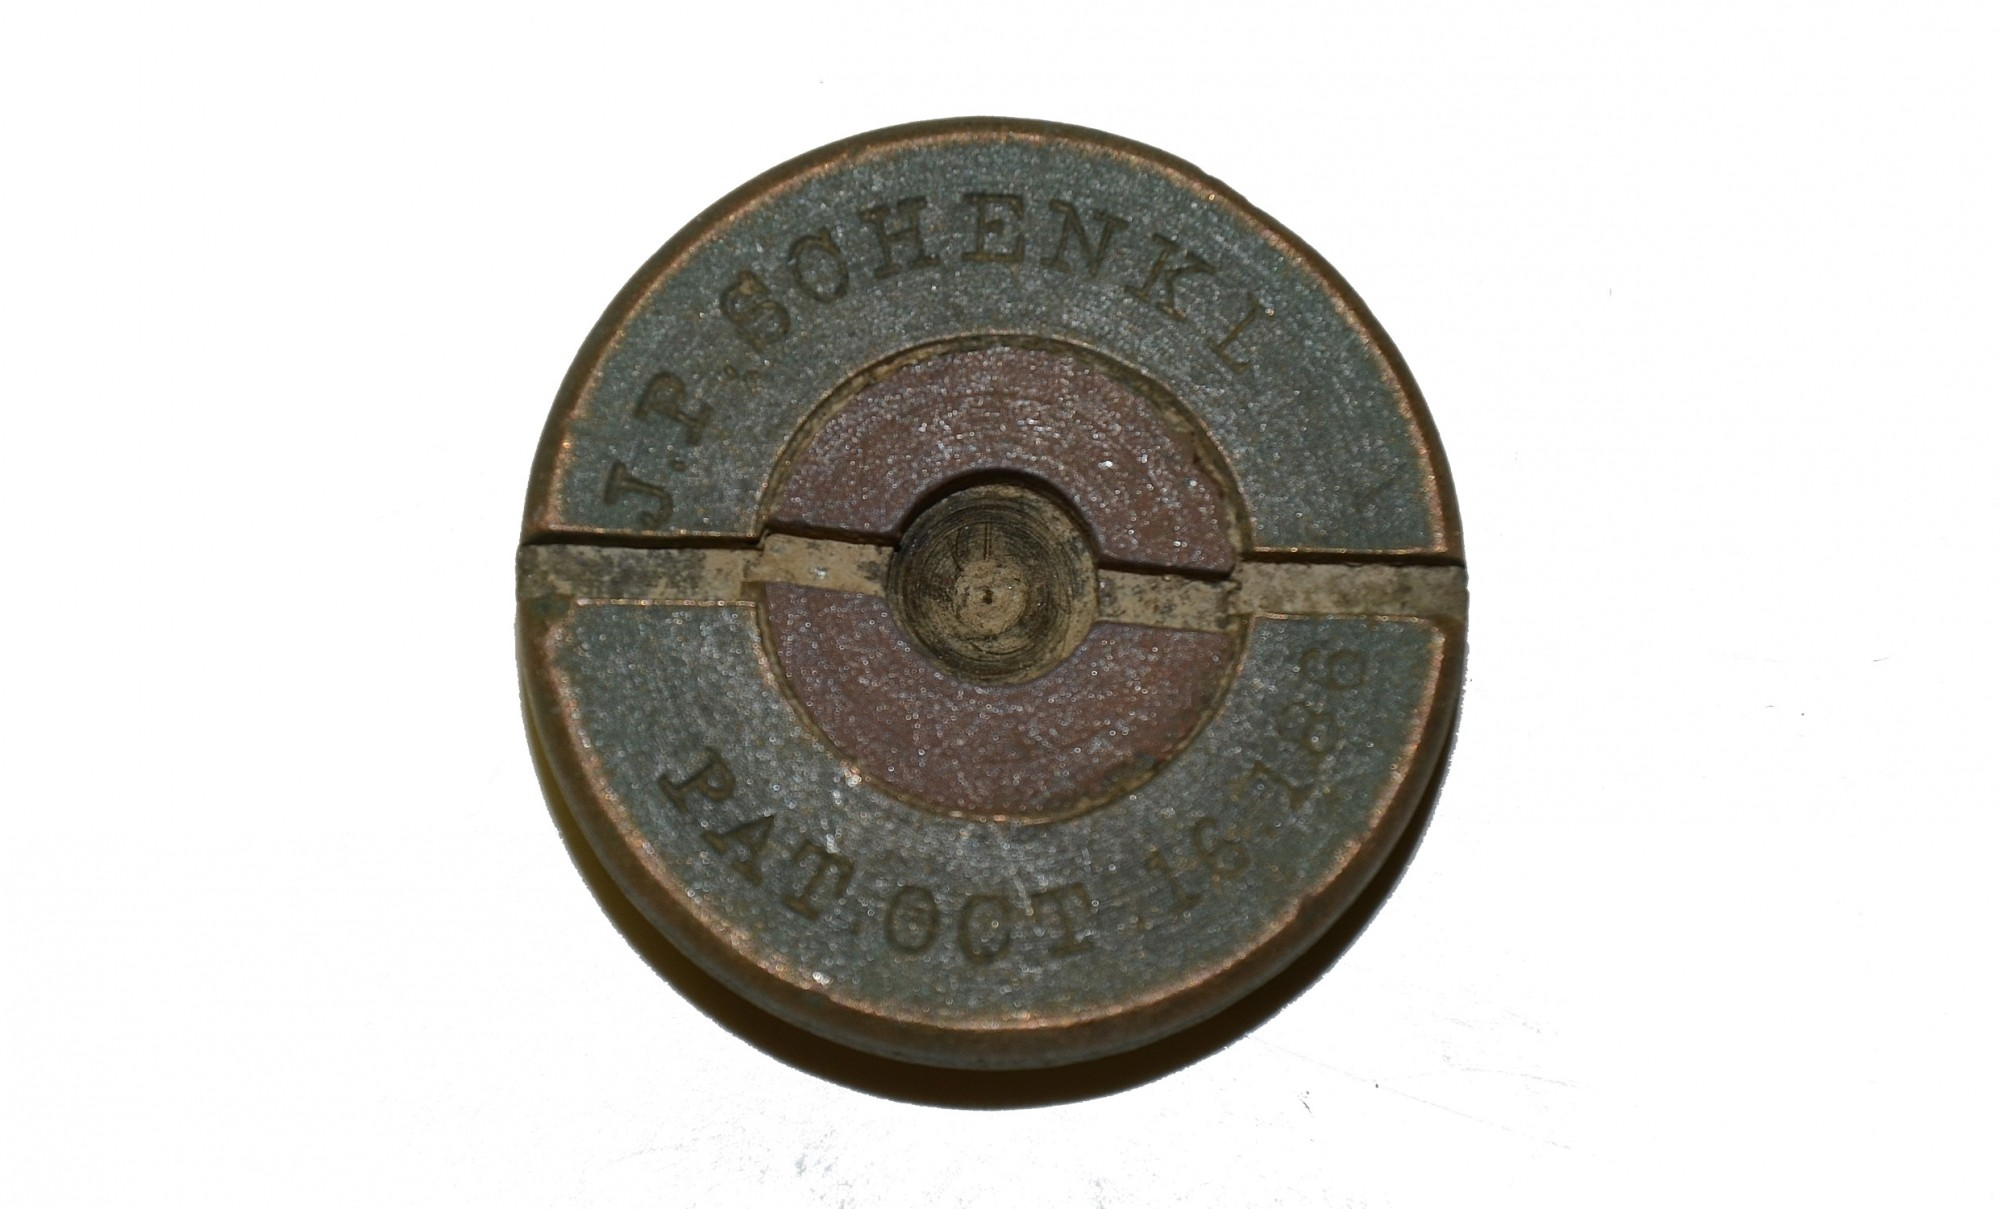 TOP SECTION SCHENKL PERCUSSION FUSE RECOVERED AT THE ROSE FARM, GETTYSBURG